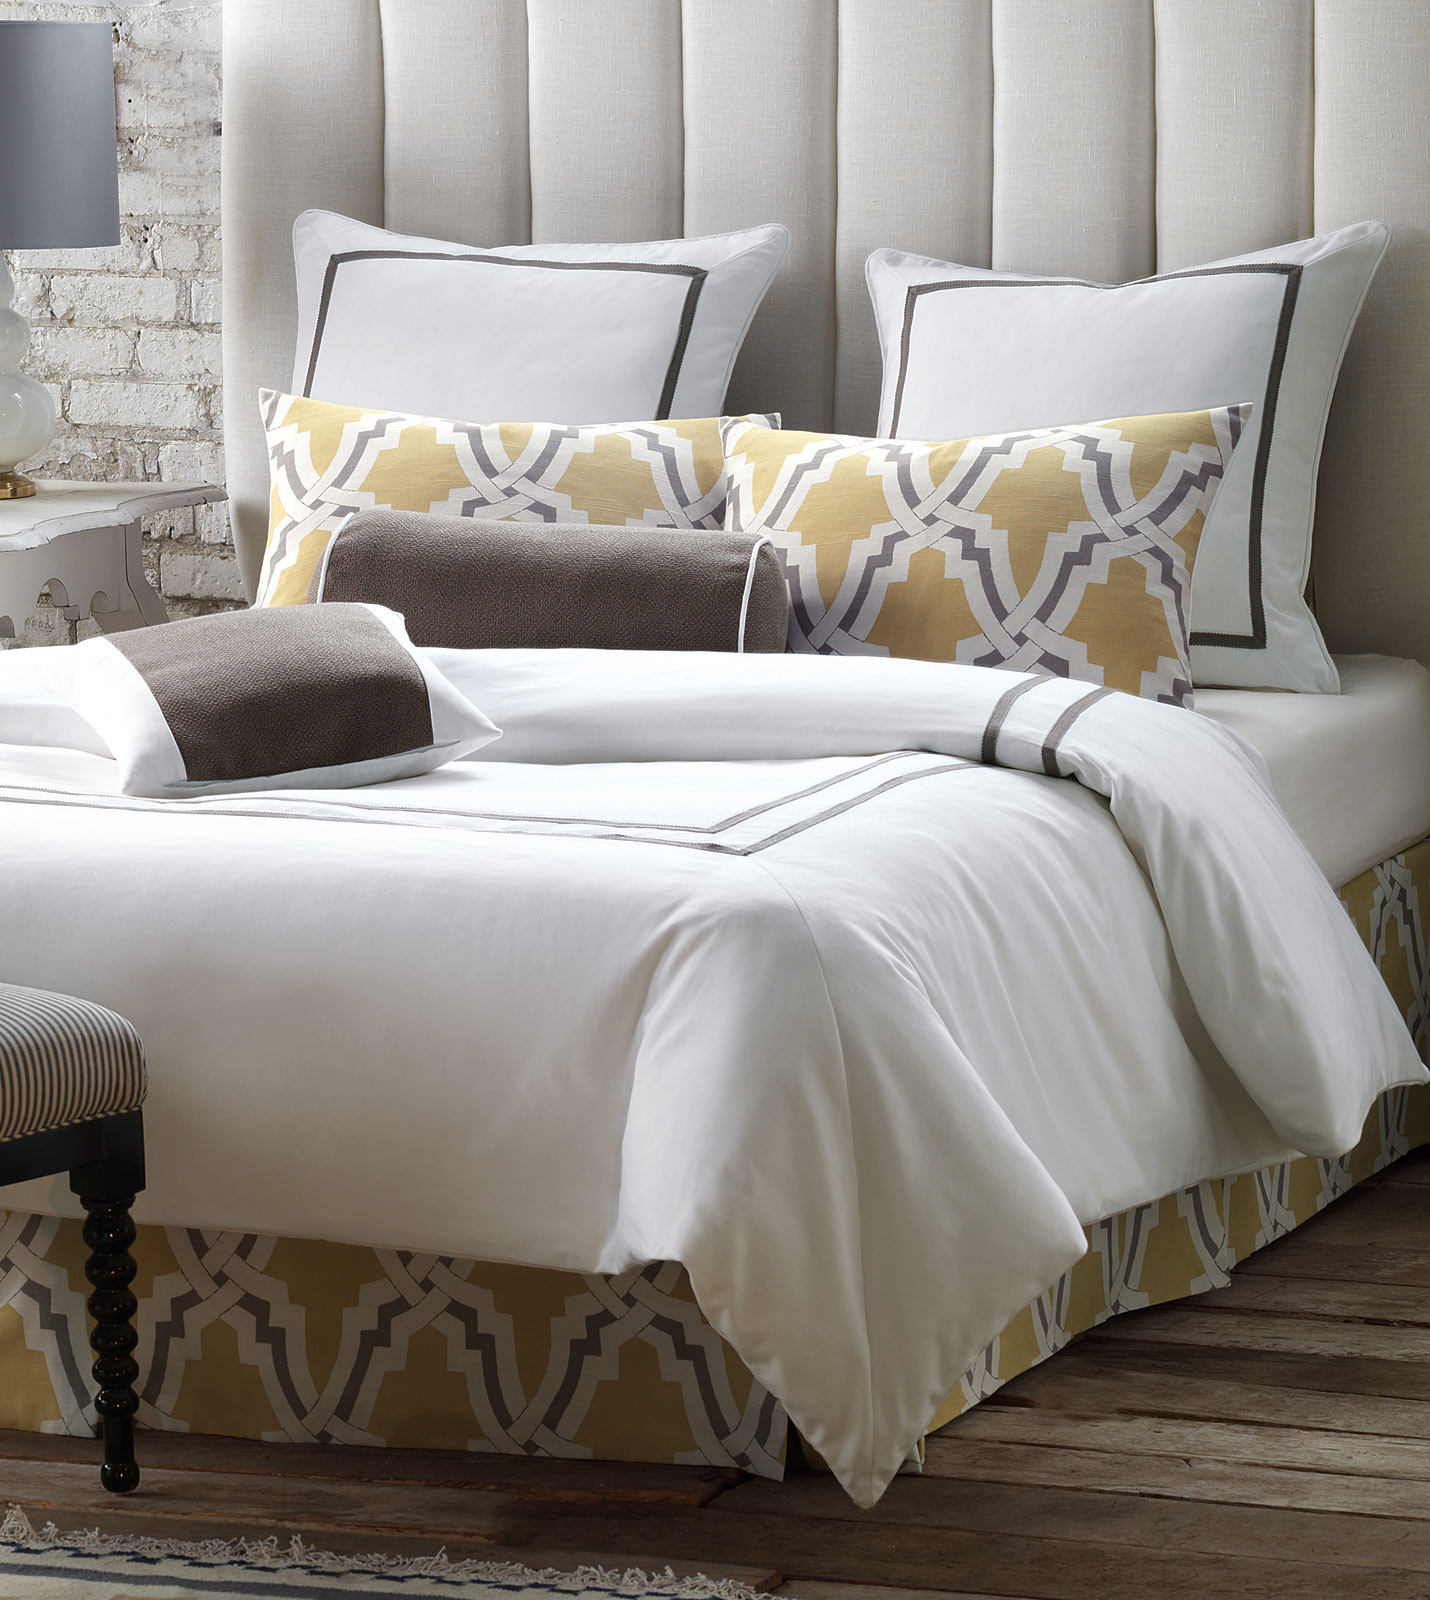 Gray And Yellow Daybed Bedding : Niche luxury bedding by eastern accents davis bedset